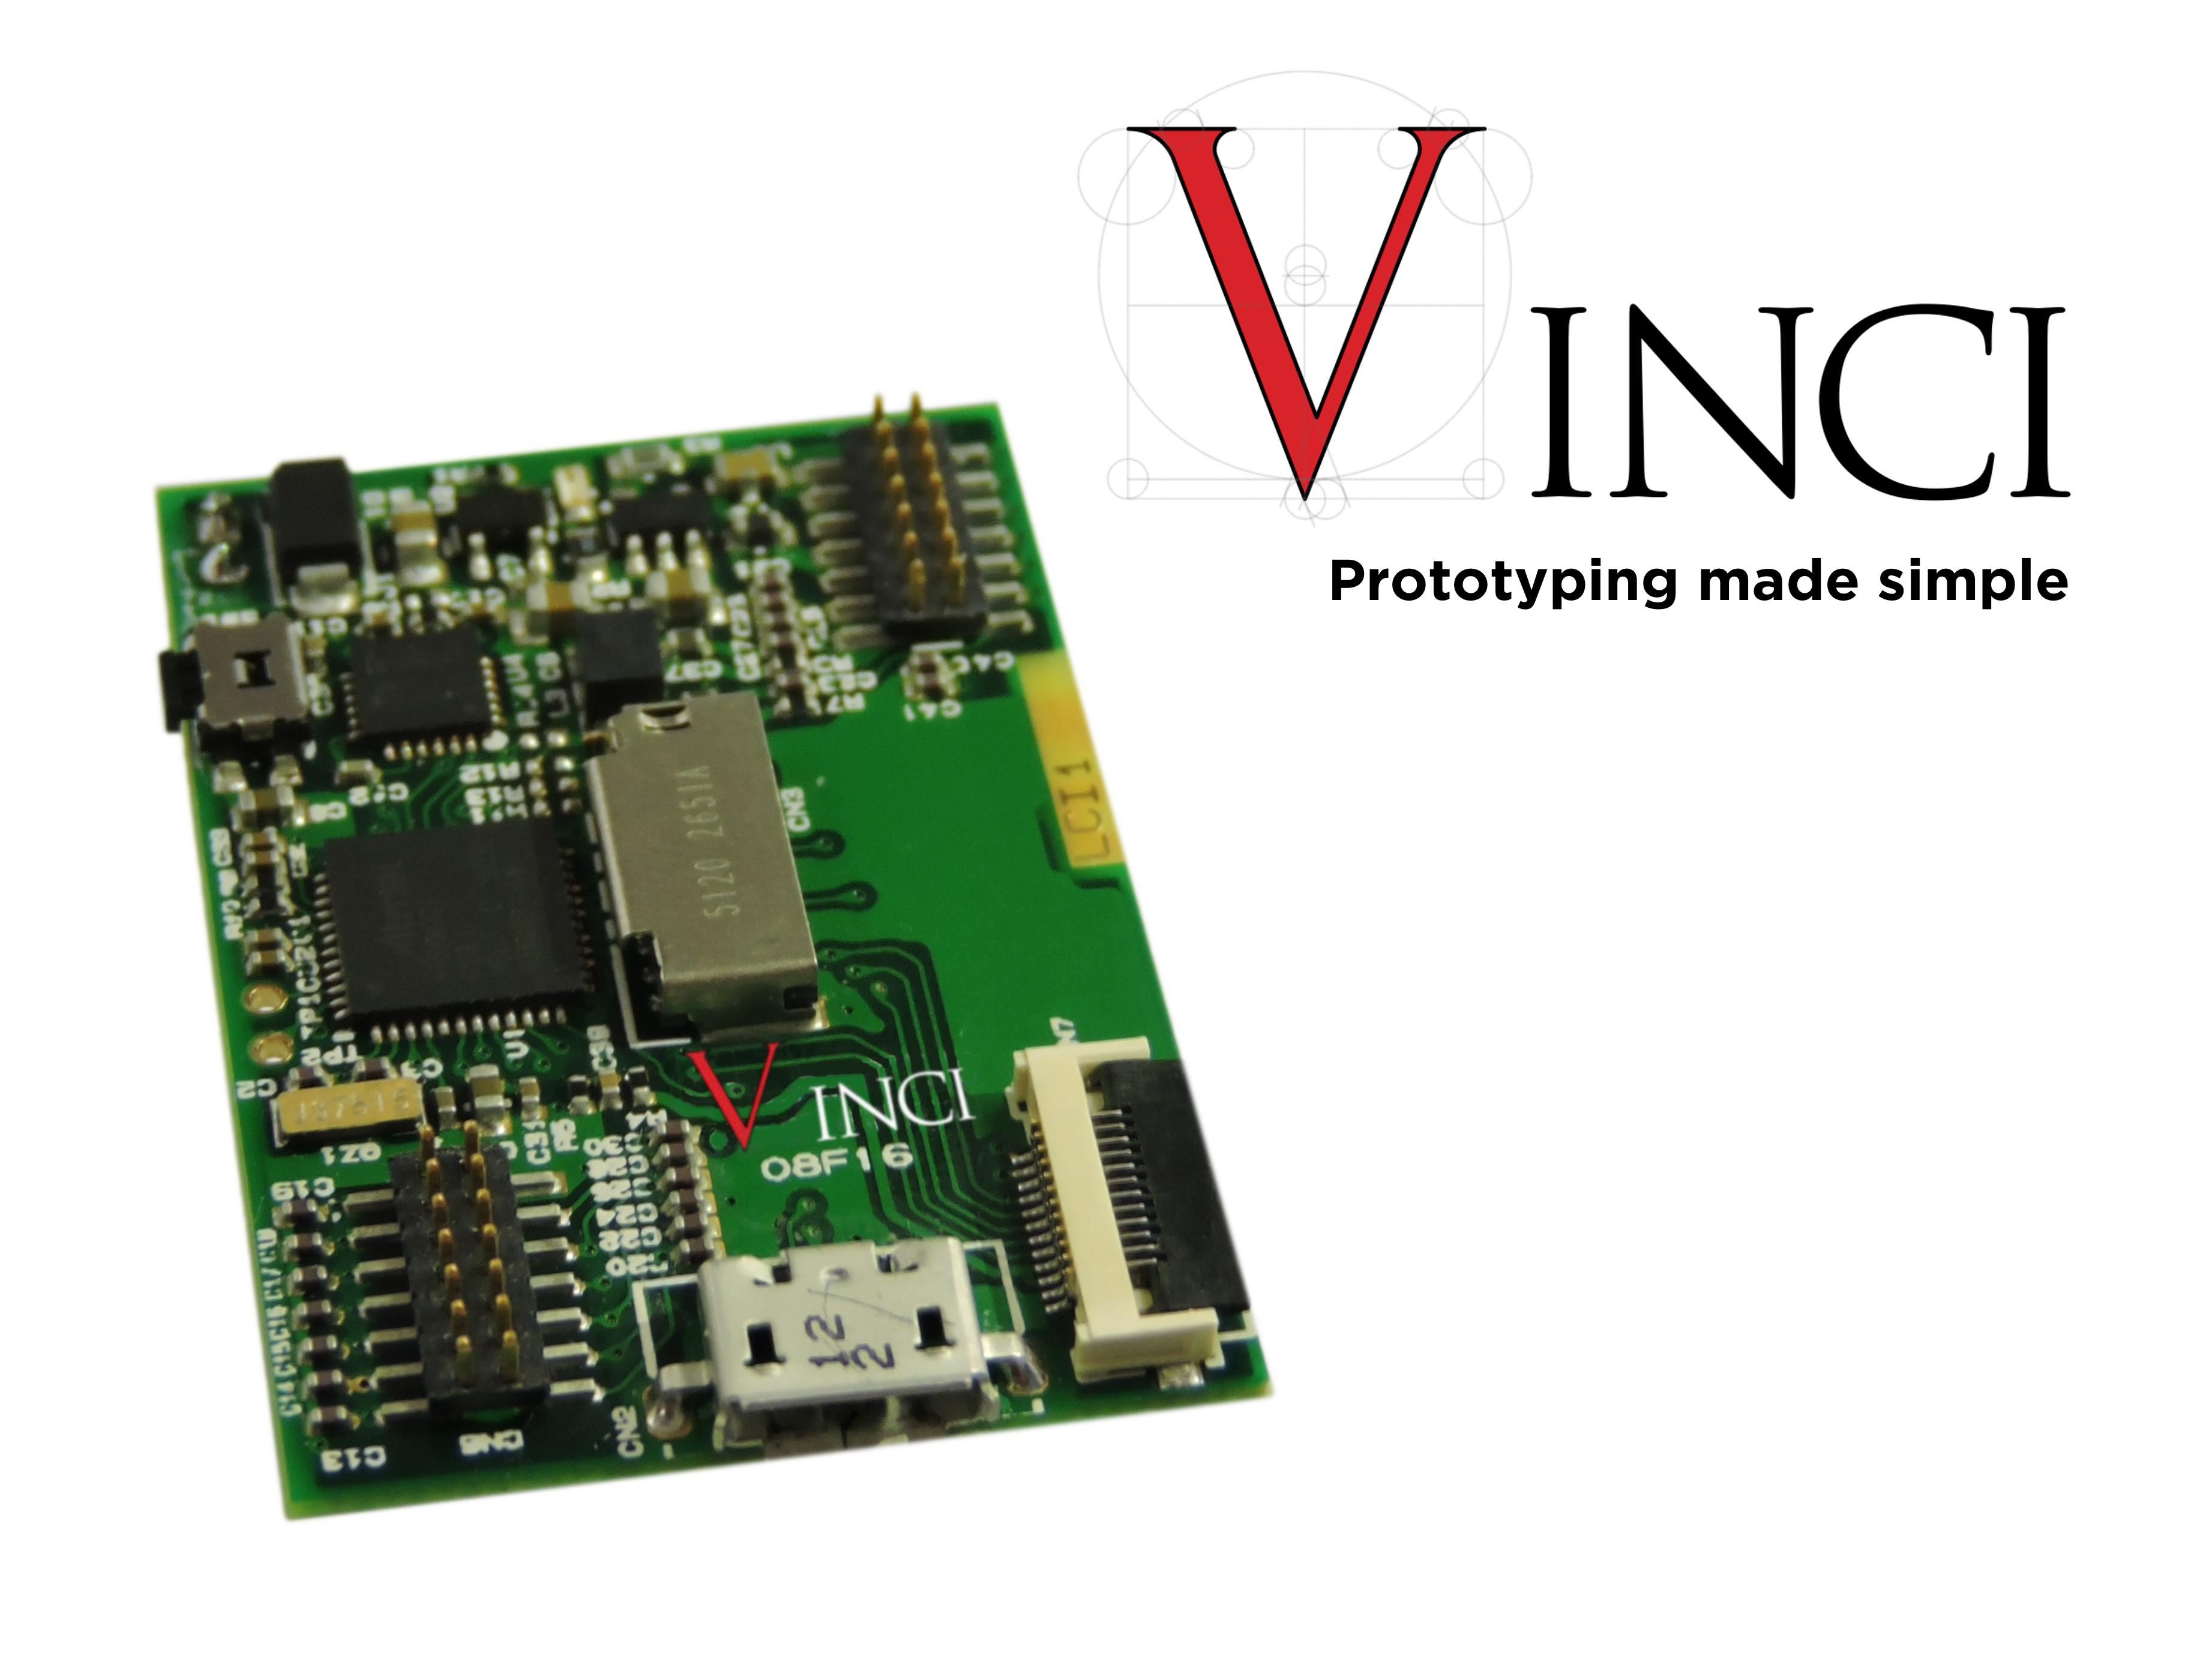 VINCI - MODULAR CORE PLATFORM FOR EMBEDDED AND WEARABLE APPLICATIONS